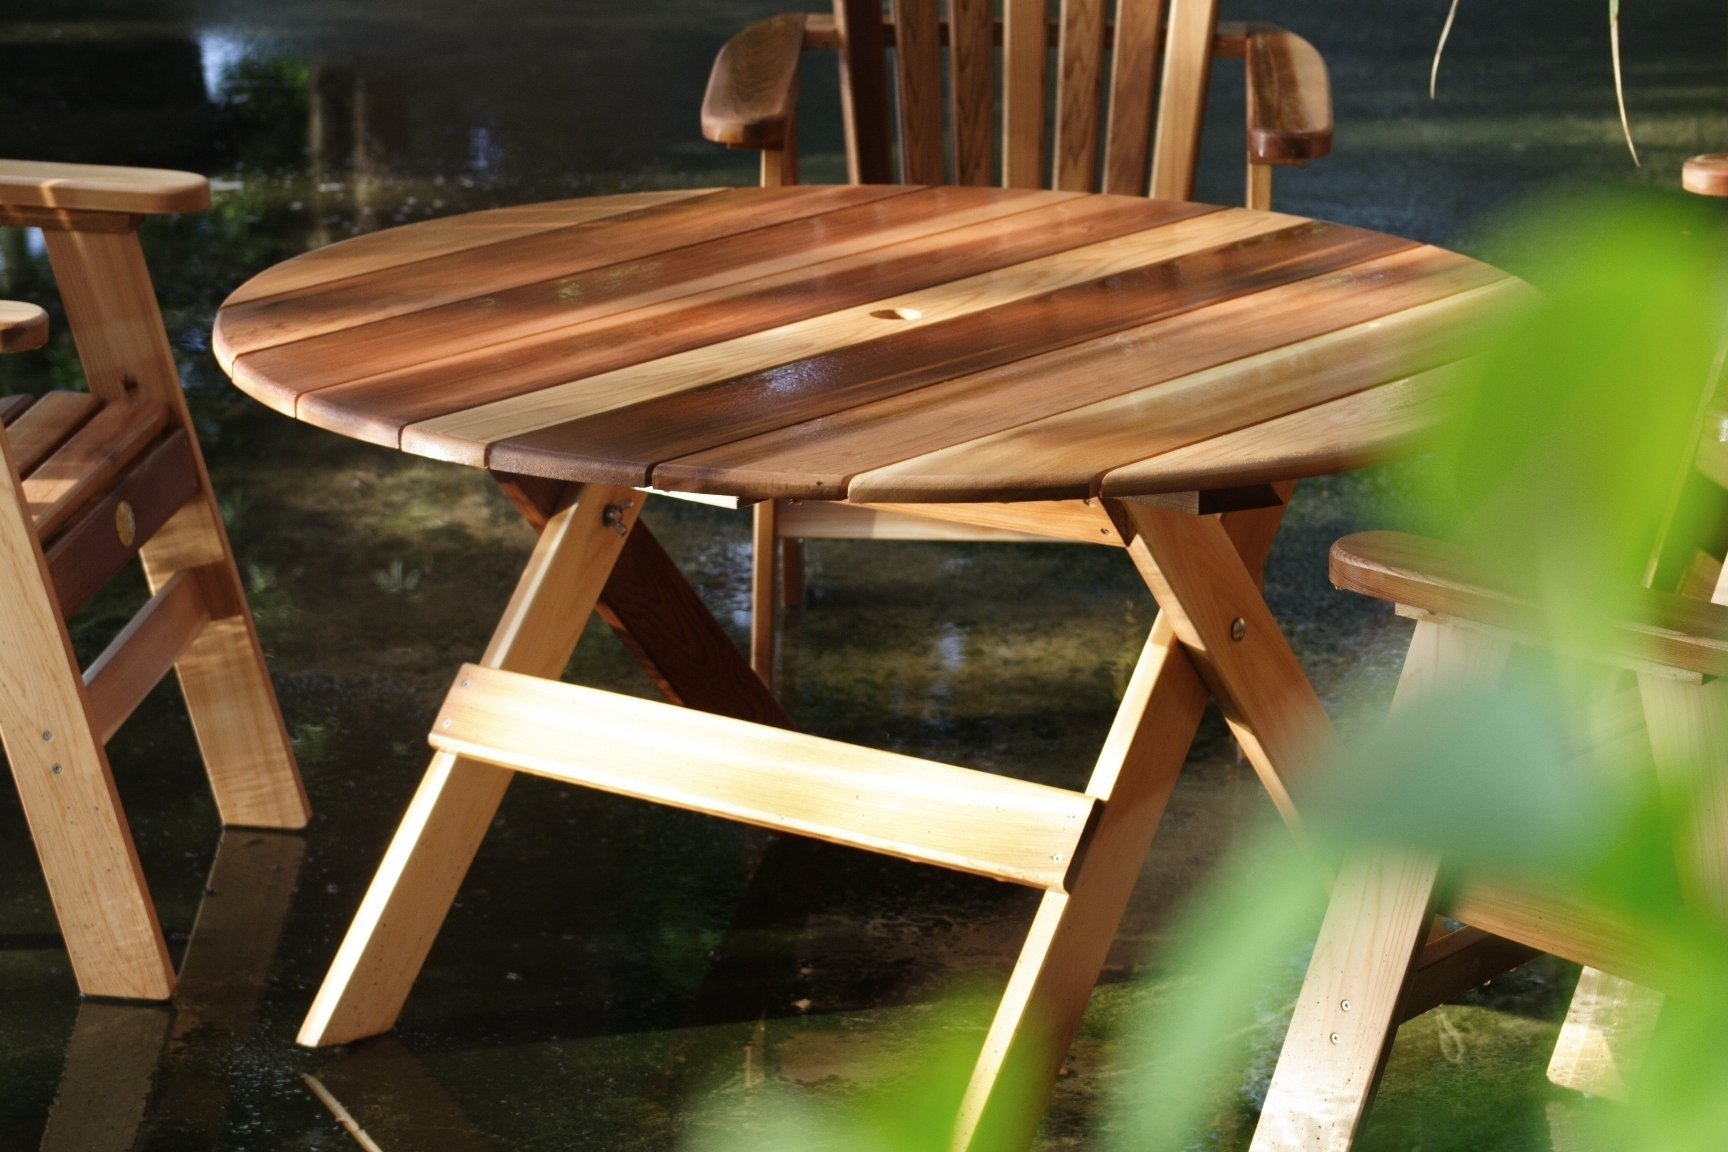 Charlton Home Macie Round Wooden Dining Table | Wayfair Intended For Most Up To Date Macie Round Dining Tables (Image 6 of 20)